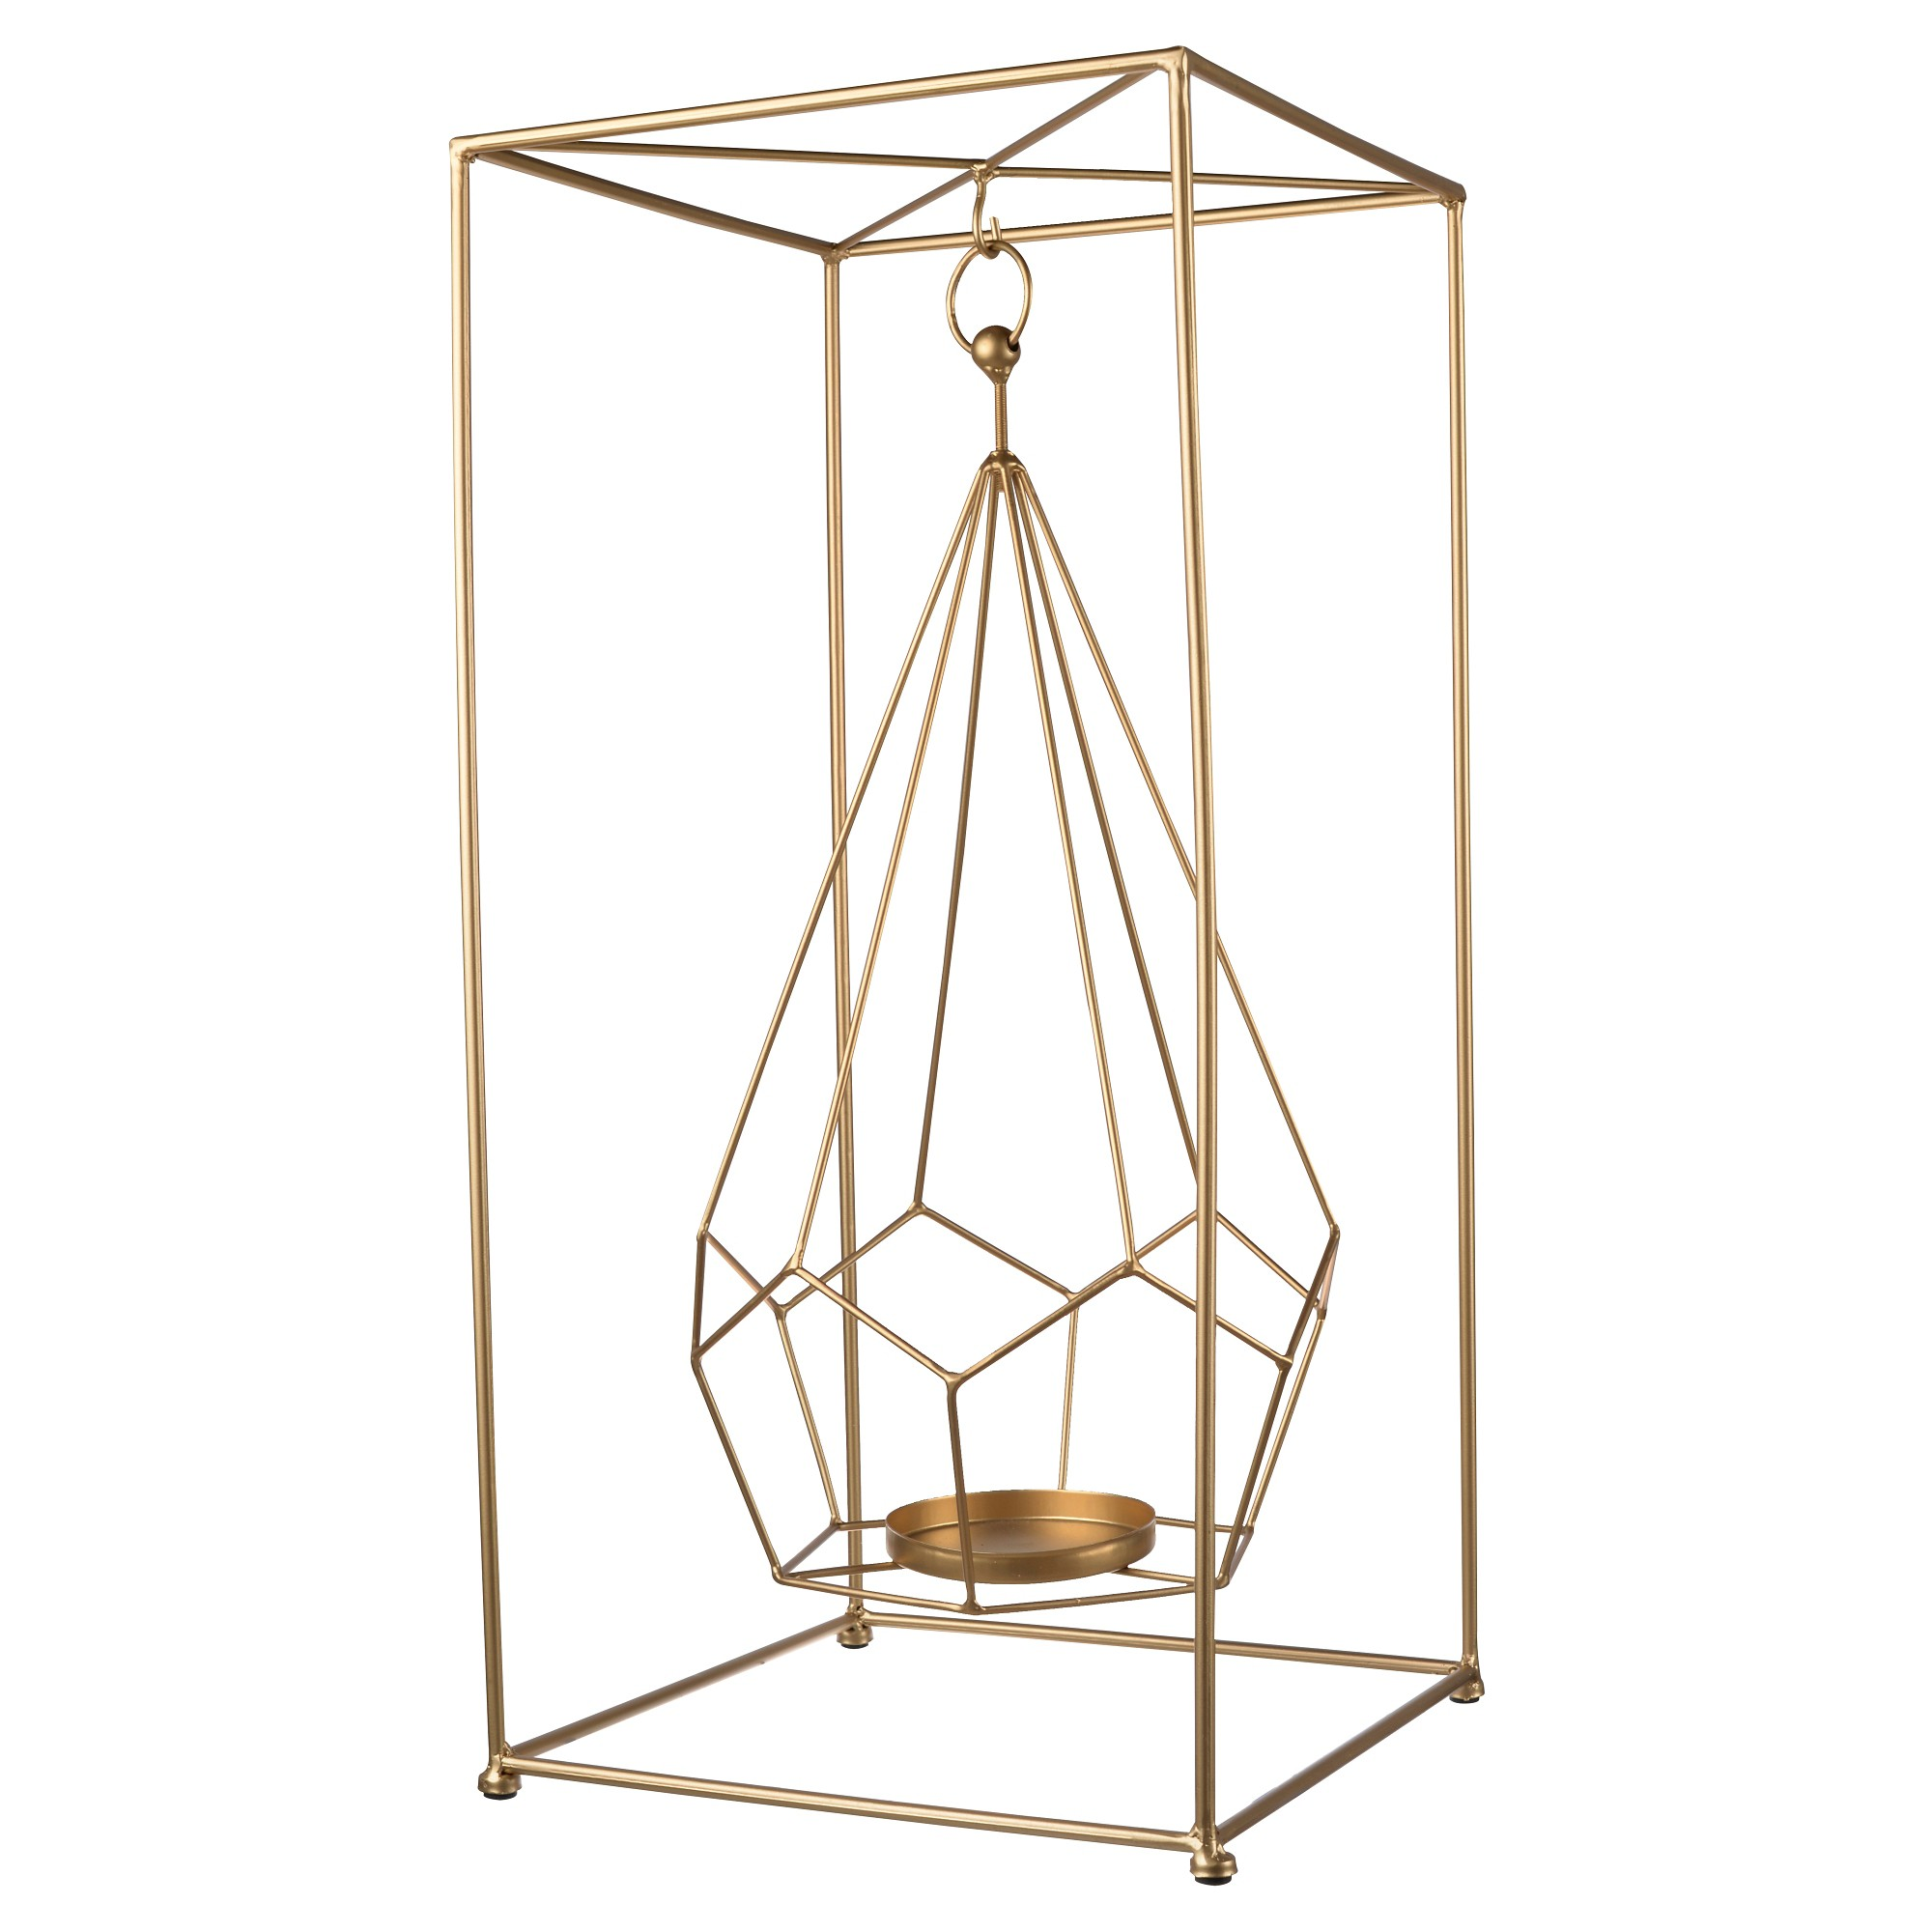 Hanging candle holder aub home bright gold products